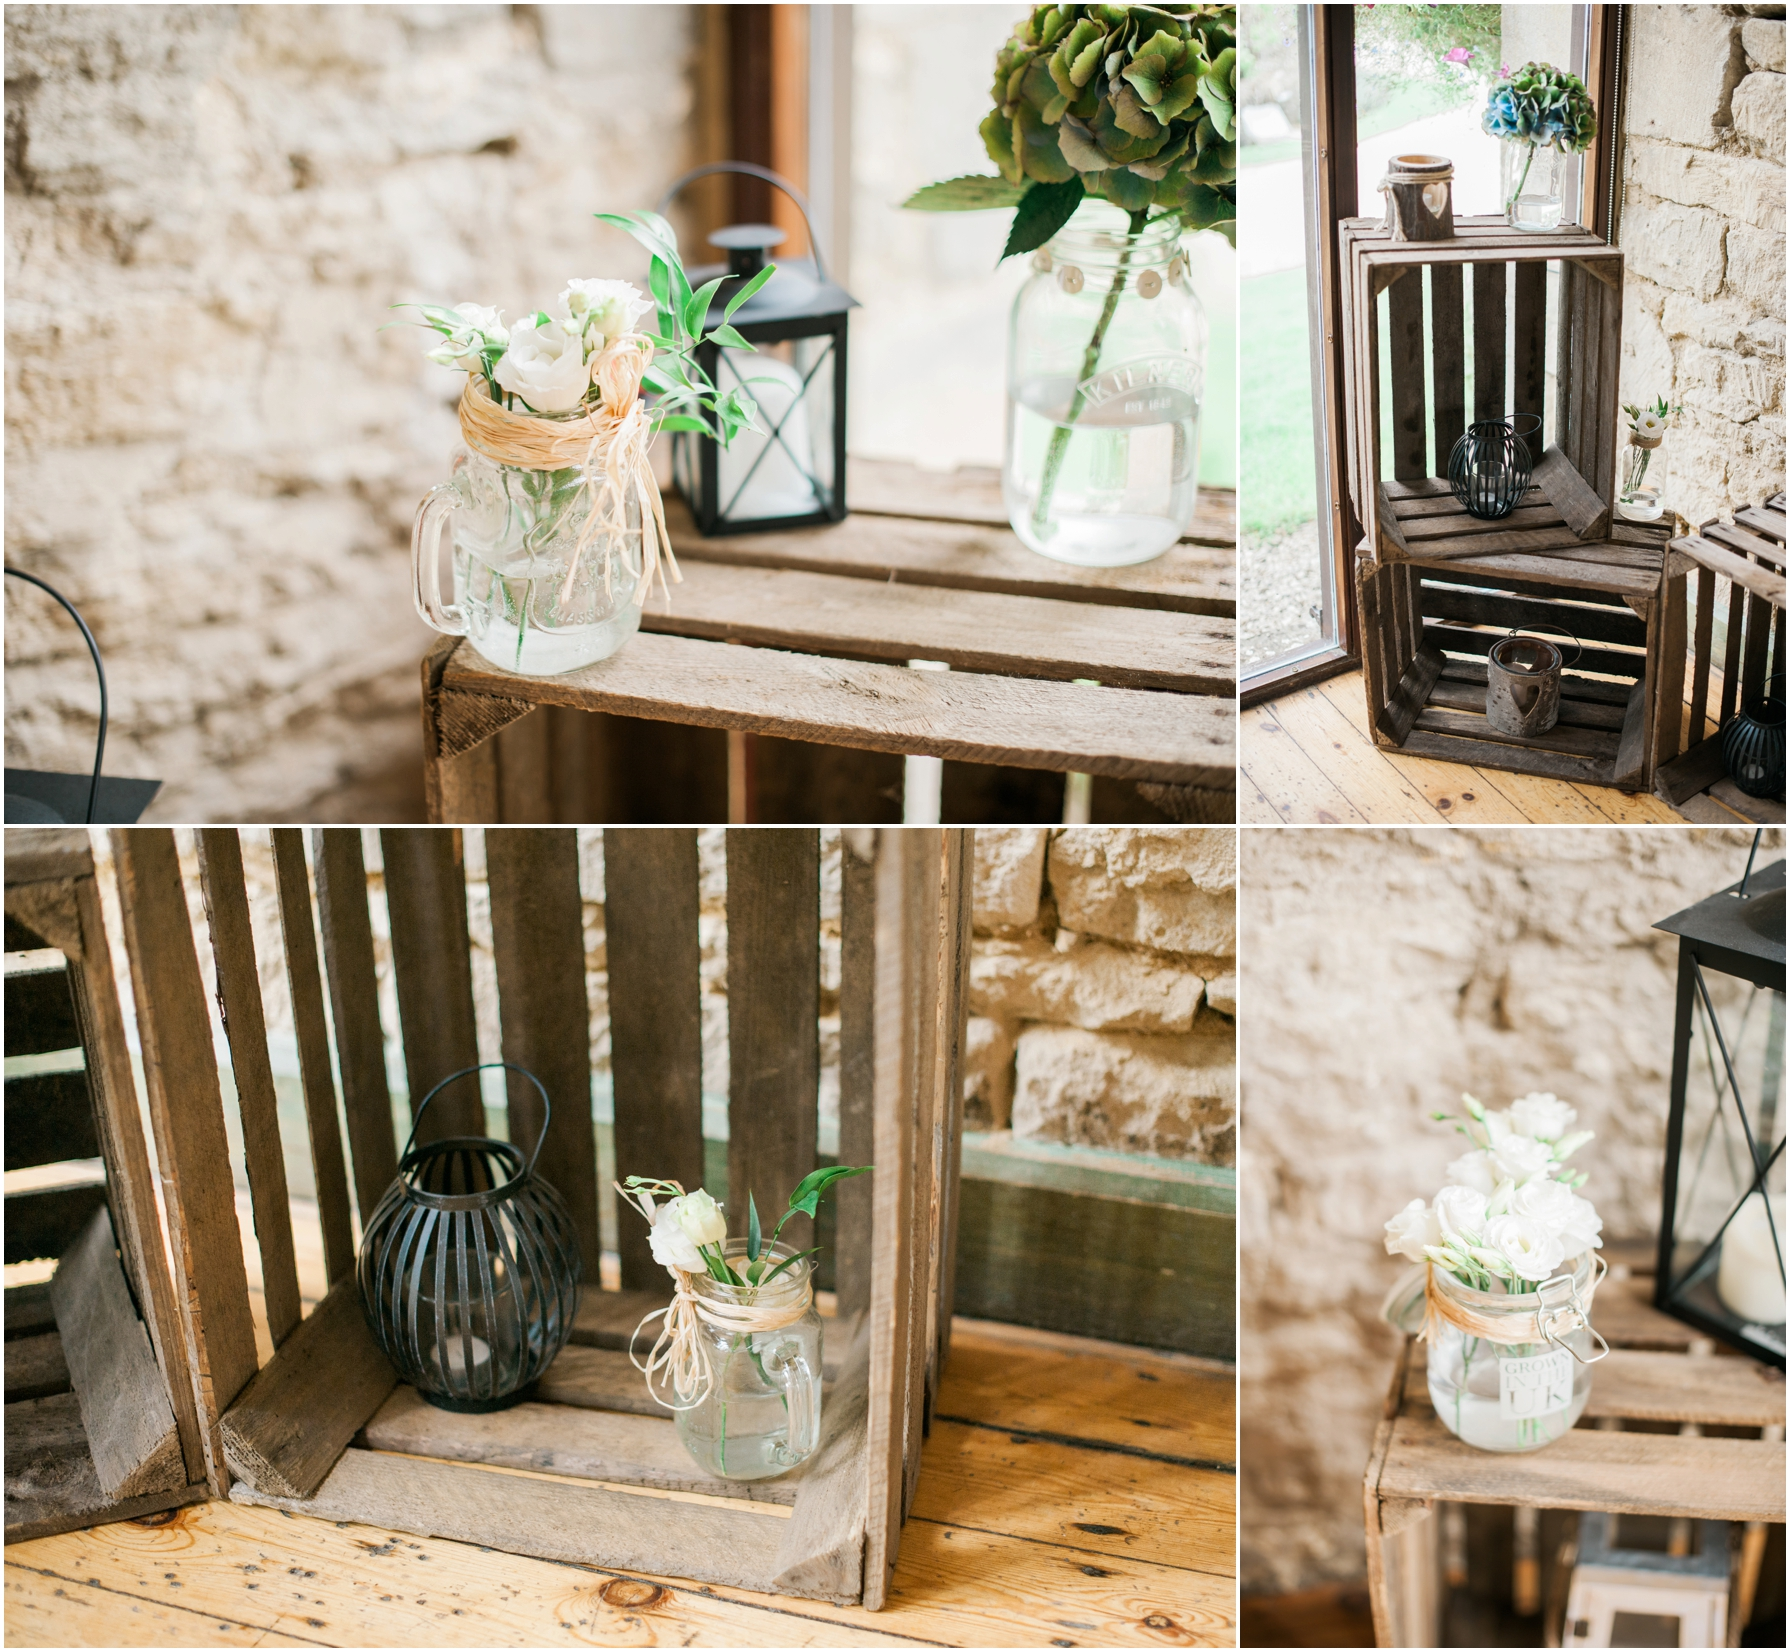 rustic wooden crates filled with flowers in glass jars